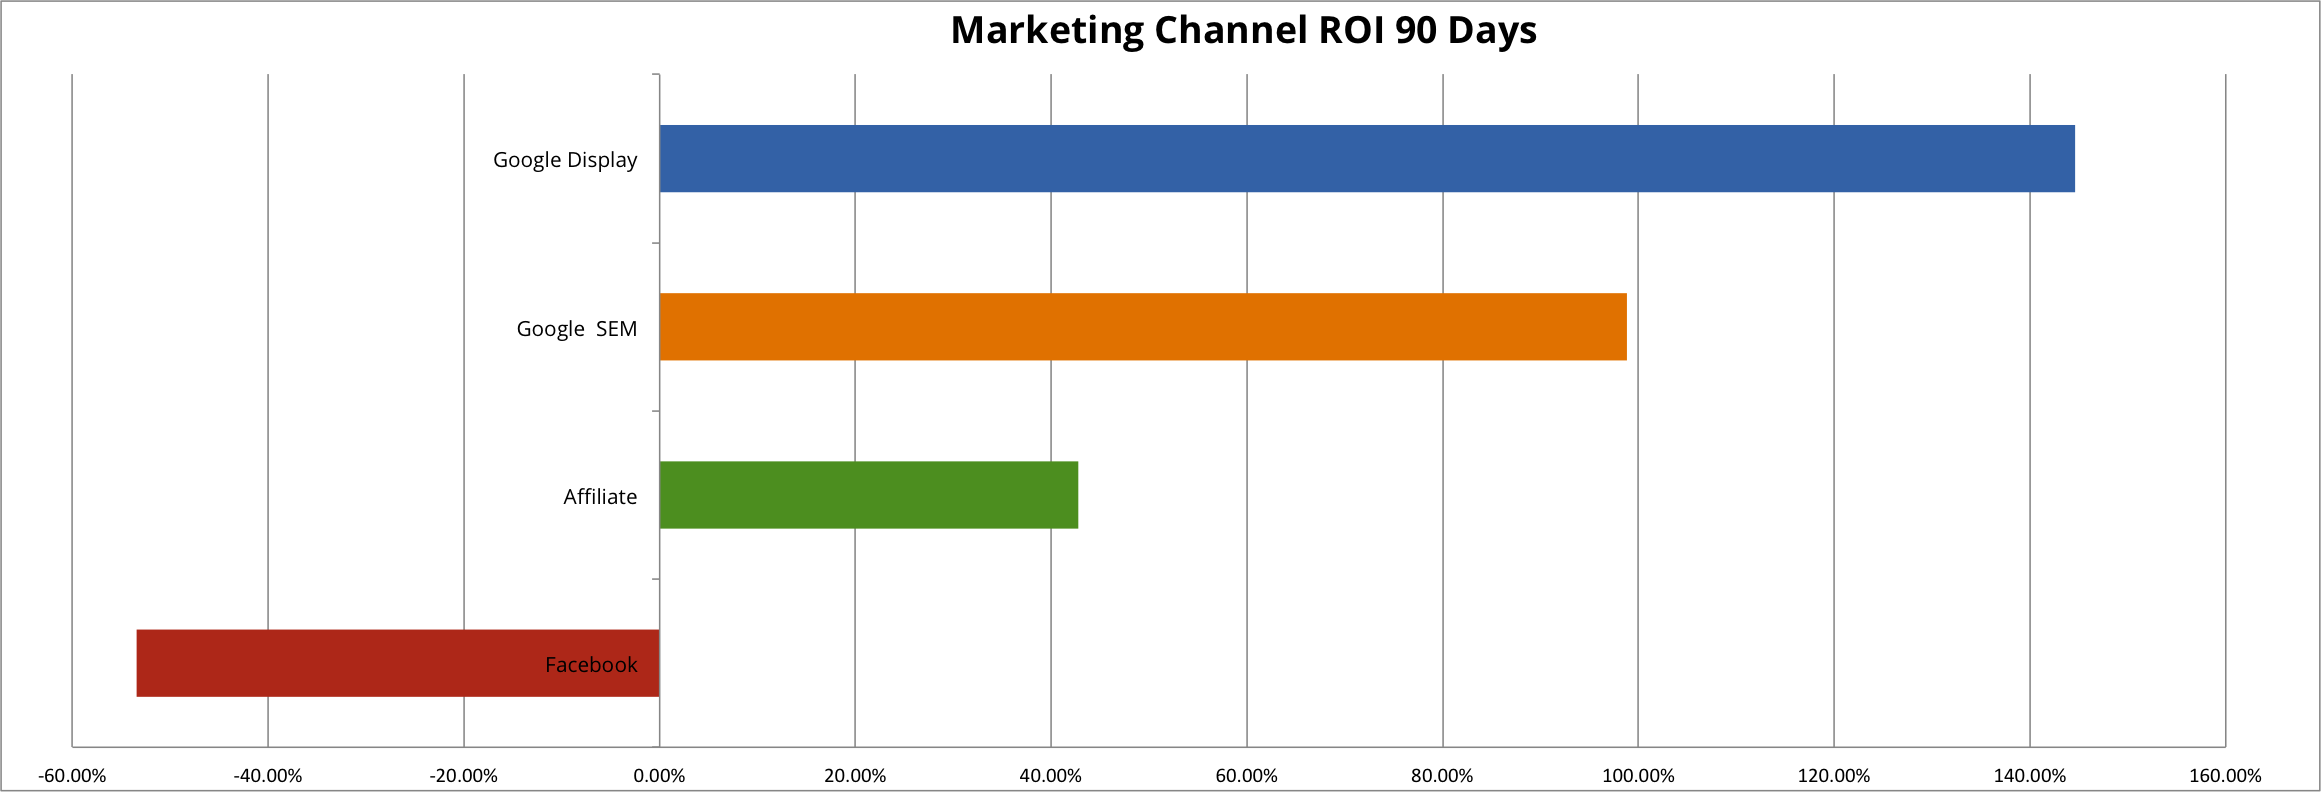 What percentage of my marketing budget should I allocate for online marketing?